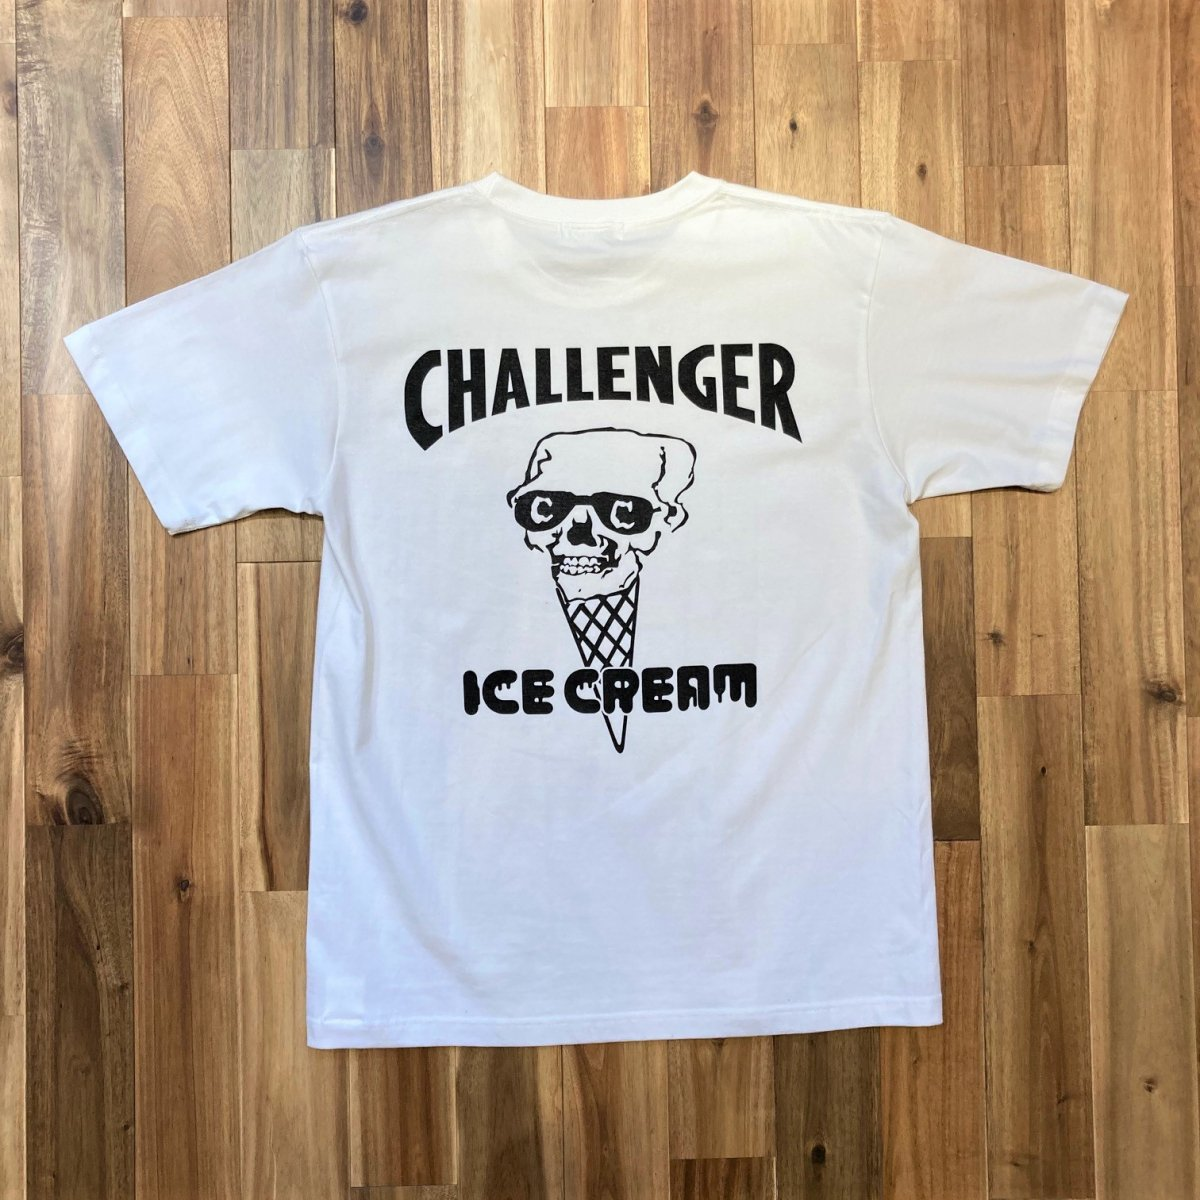 <img class='new_mark_img1' src='https://img.shop-pro.jp/img/new/icons3.gif' style='border:none;display:inline;margin:0px;padding:0px;width:auto;' />ICE CREAM アイスクリーム / Tシャツ × CHALLENGER SKULL T-SHIRT 【WHITE】